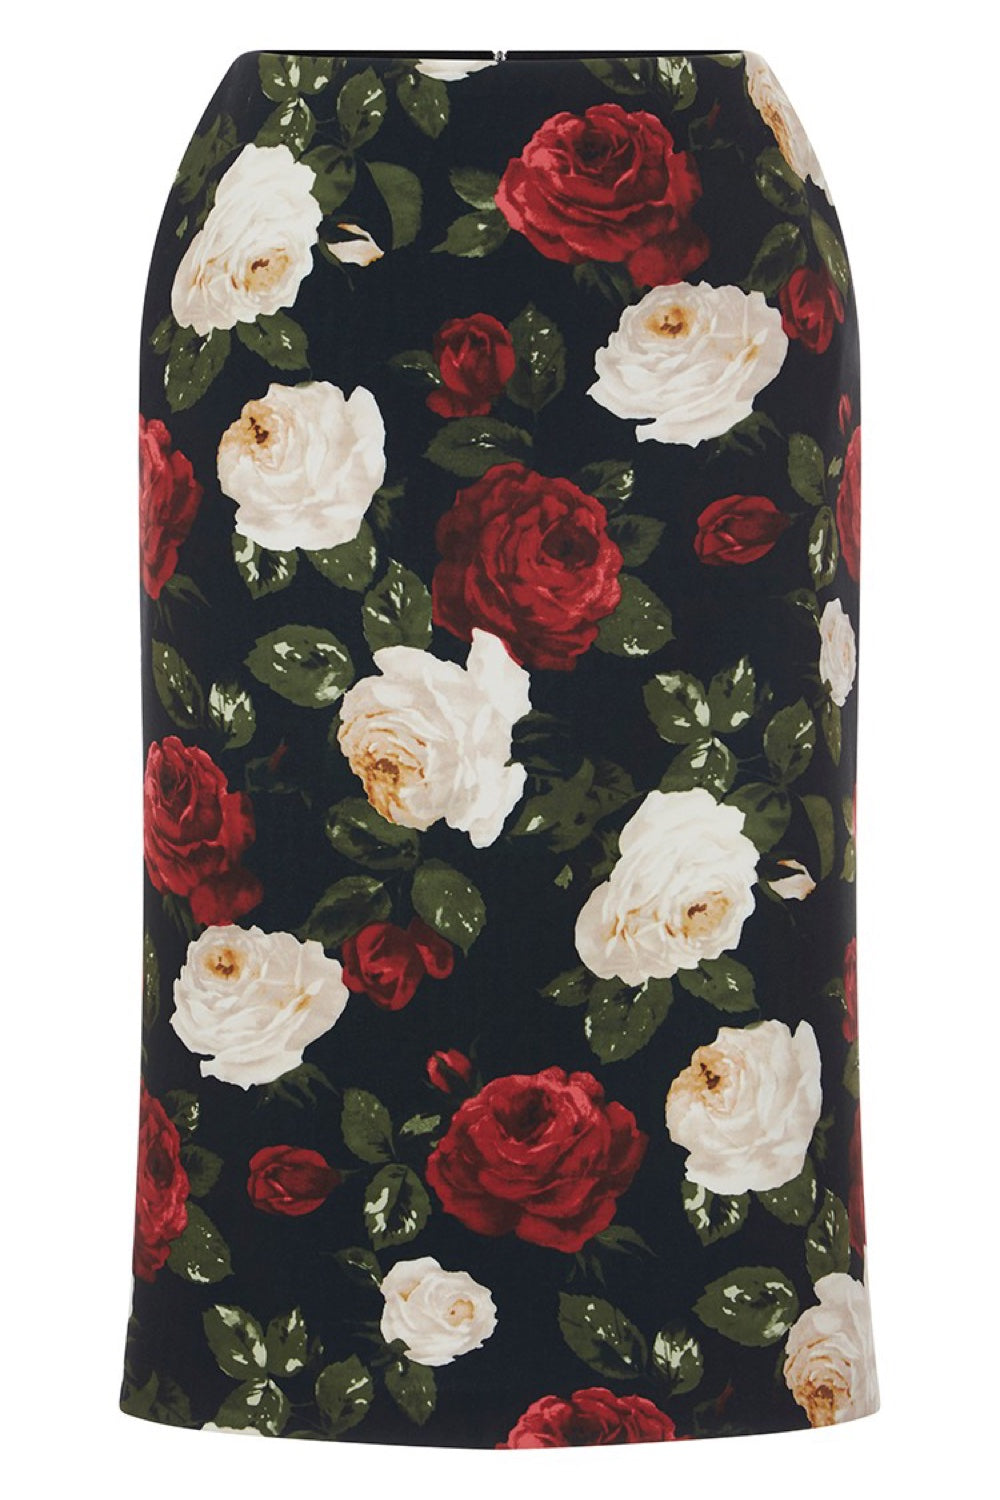 Floral Printed Skirt - The Bobby Boga